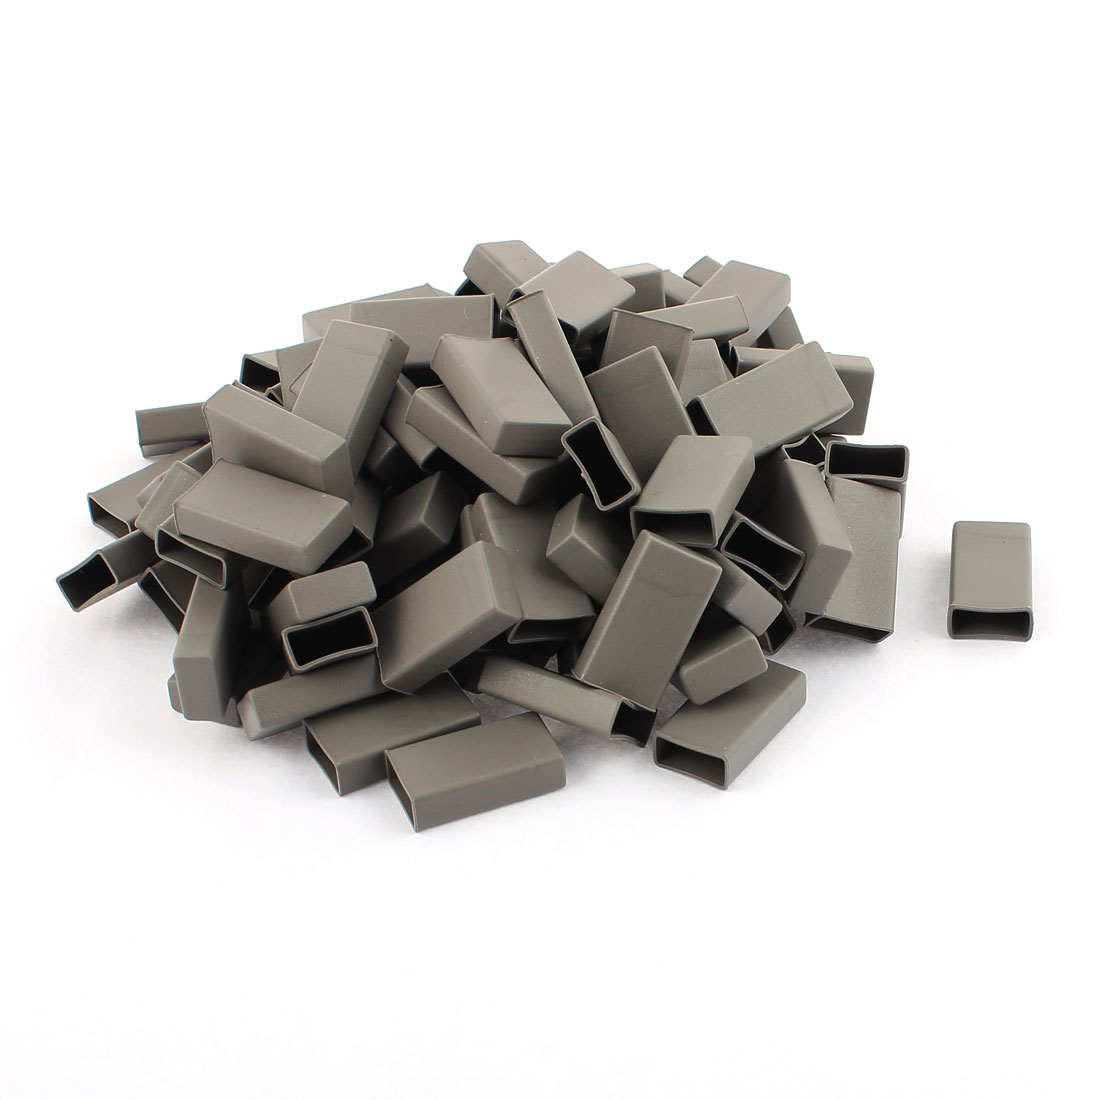 100 Pcs Thermal Conduction Transistor Silicon Boot Cap TO-220A Insulation